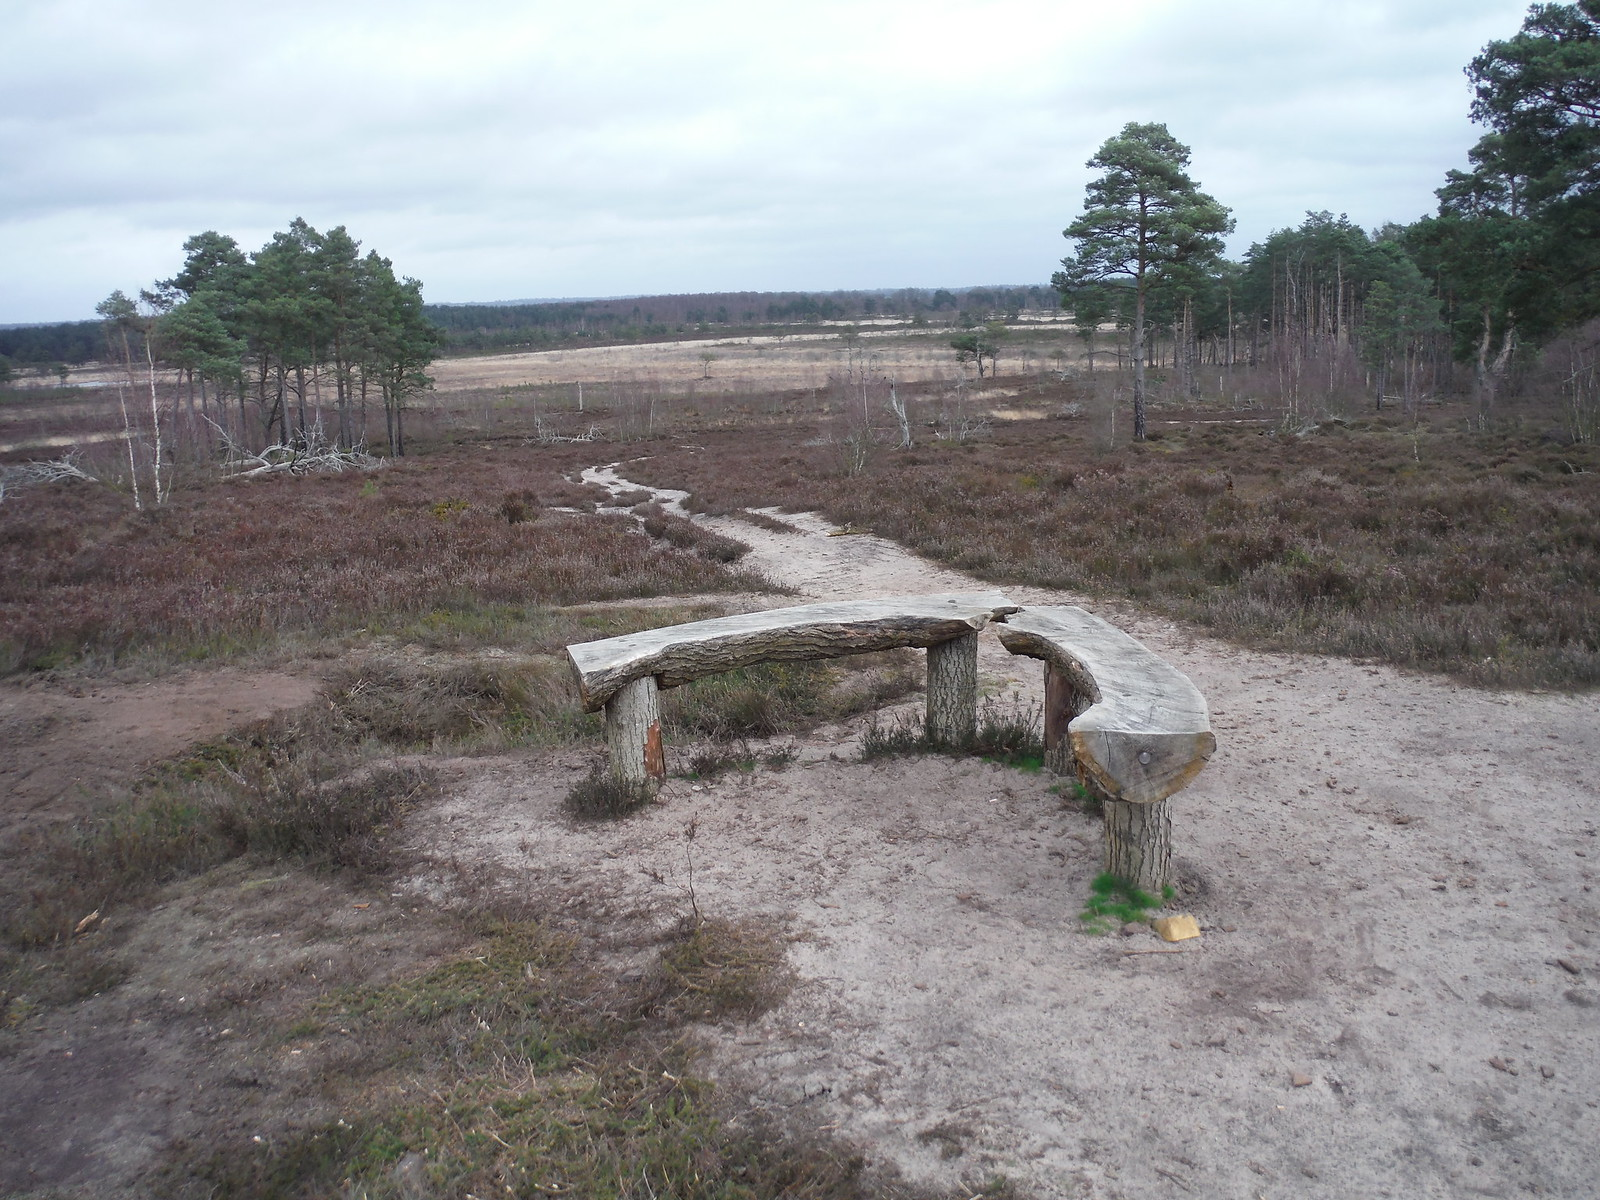 Angled Bench at Viewpoint on Shrike Hill, Thursley Common SWC Walk 144 Haslemere to Farnham - Thursley Common Extension